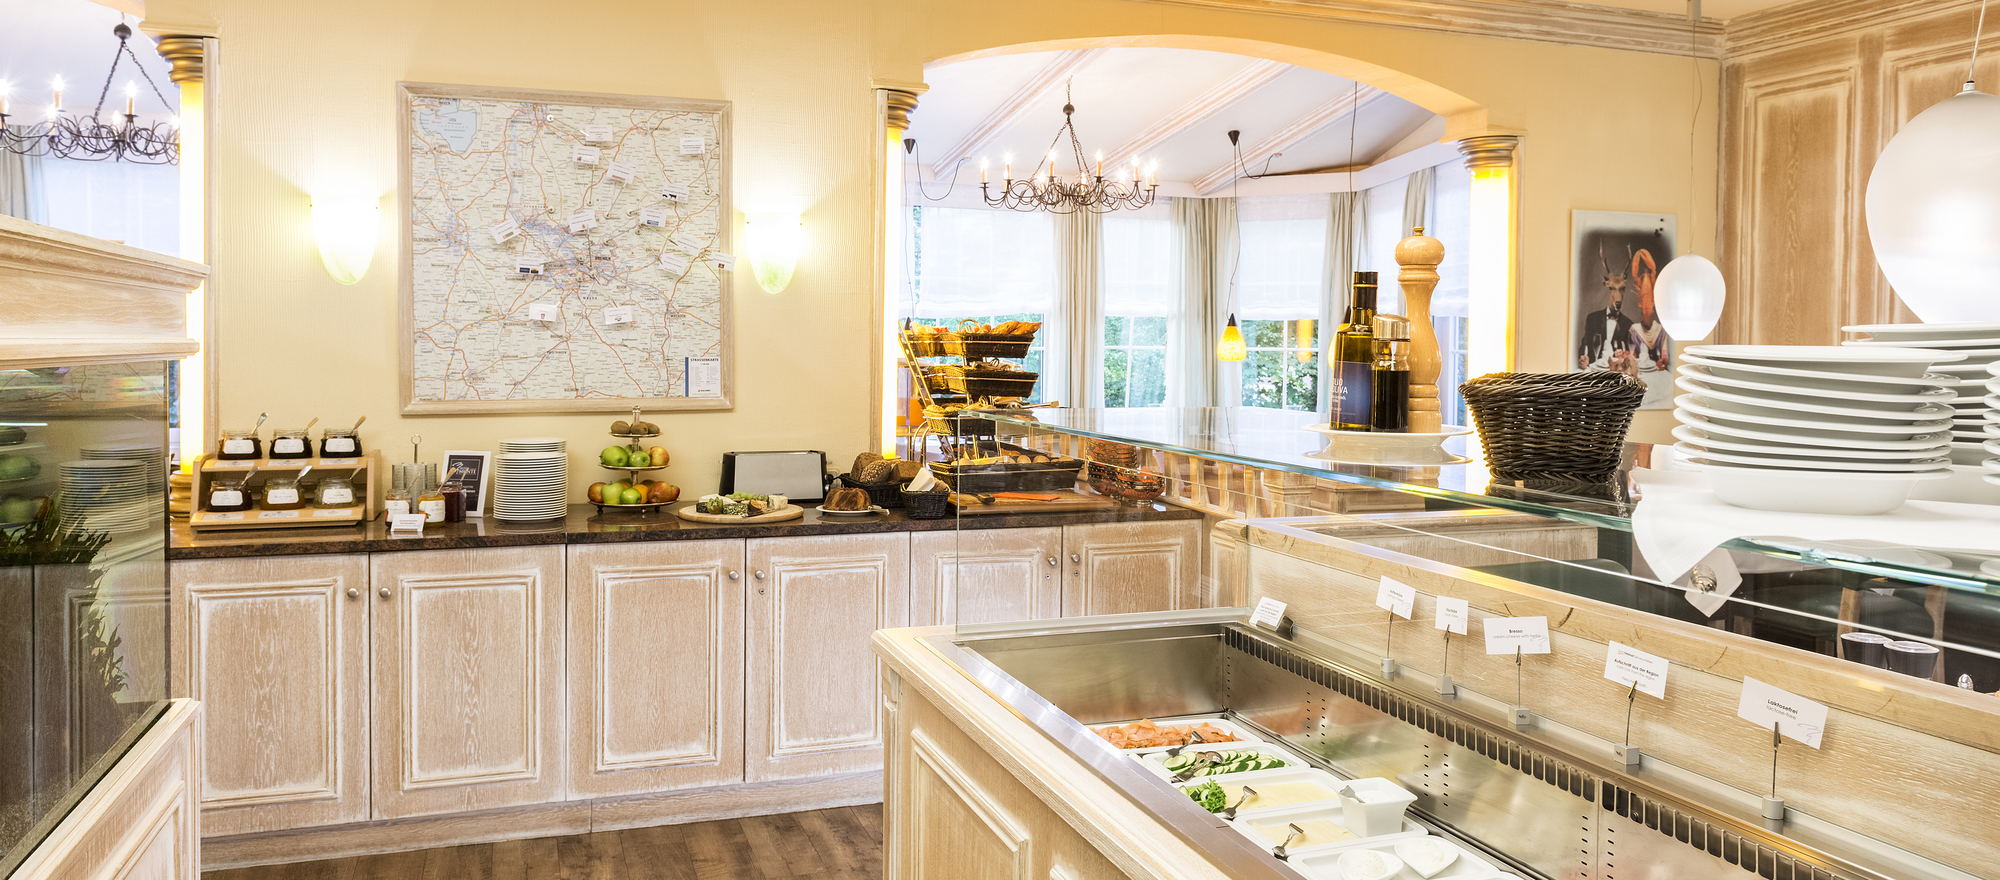 Start your day right at the Ringhotel Munte am Stadtwald in Bremen, 4 stars Hotel in the Metropolitian region Bremen